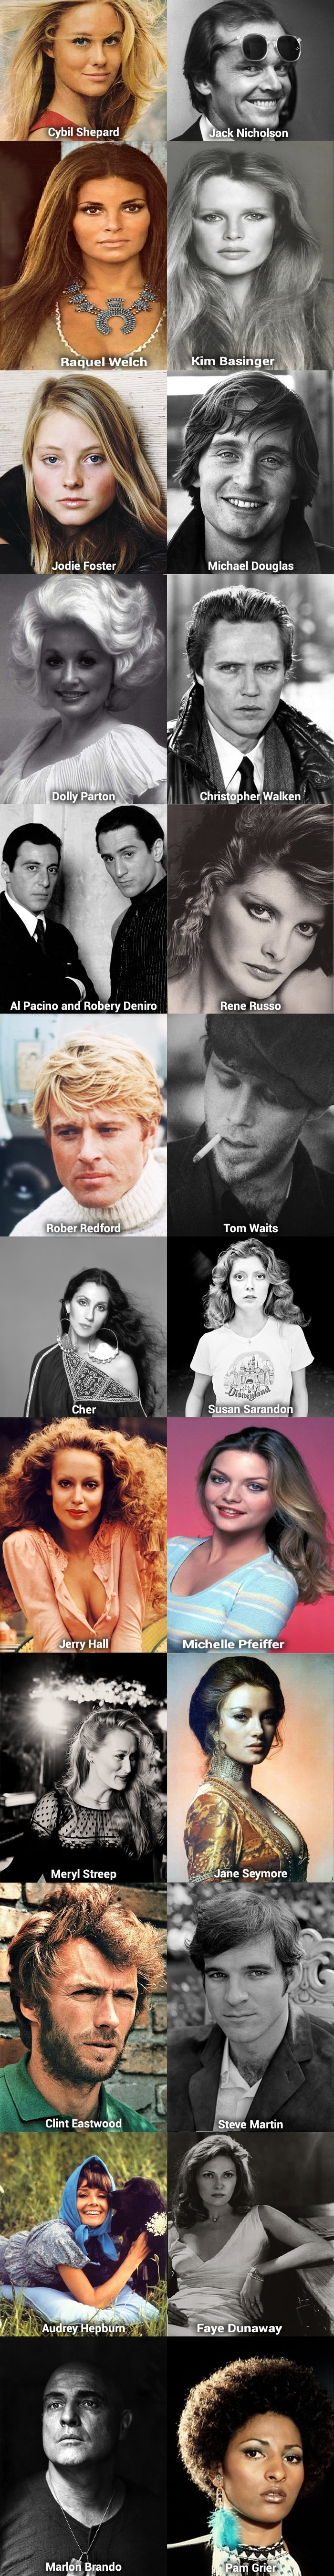 Stars from the 70s